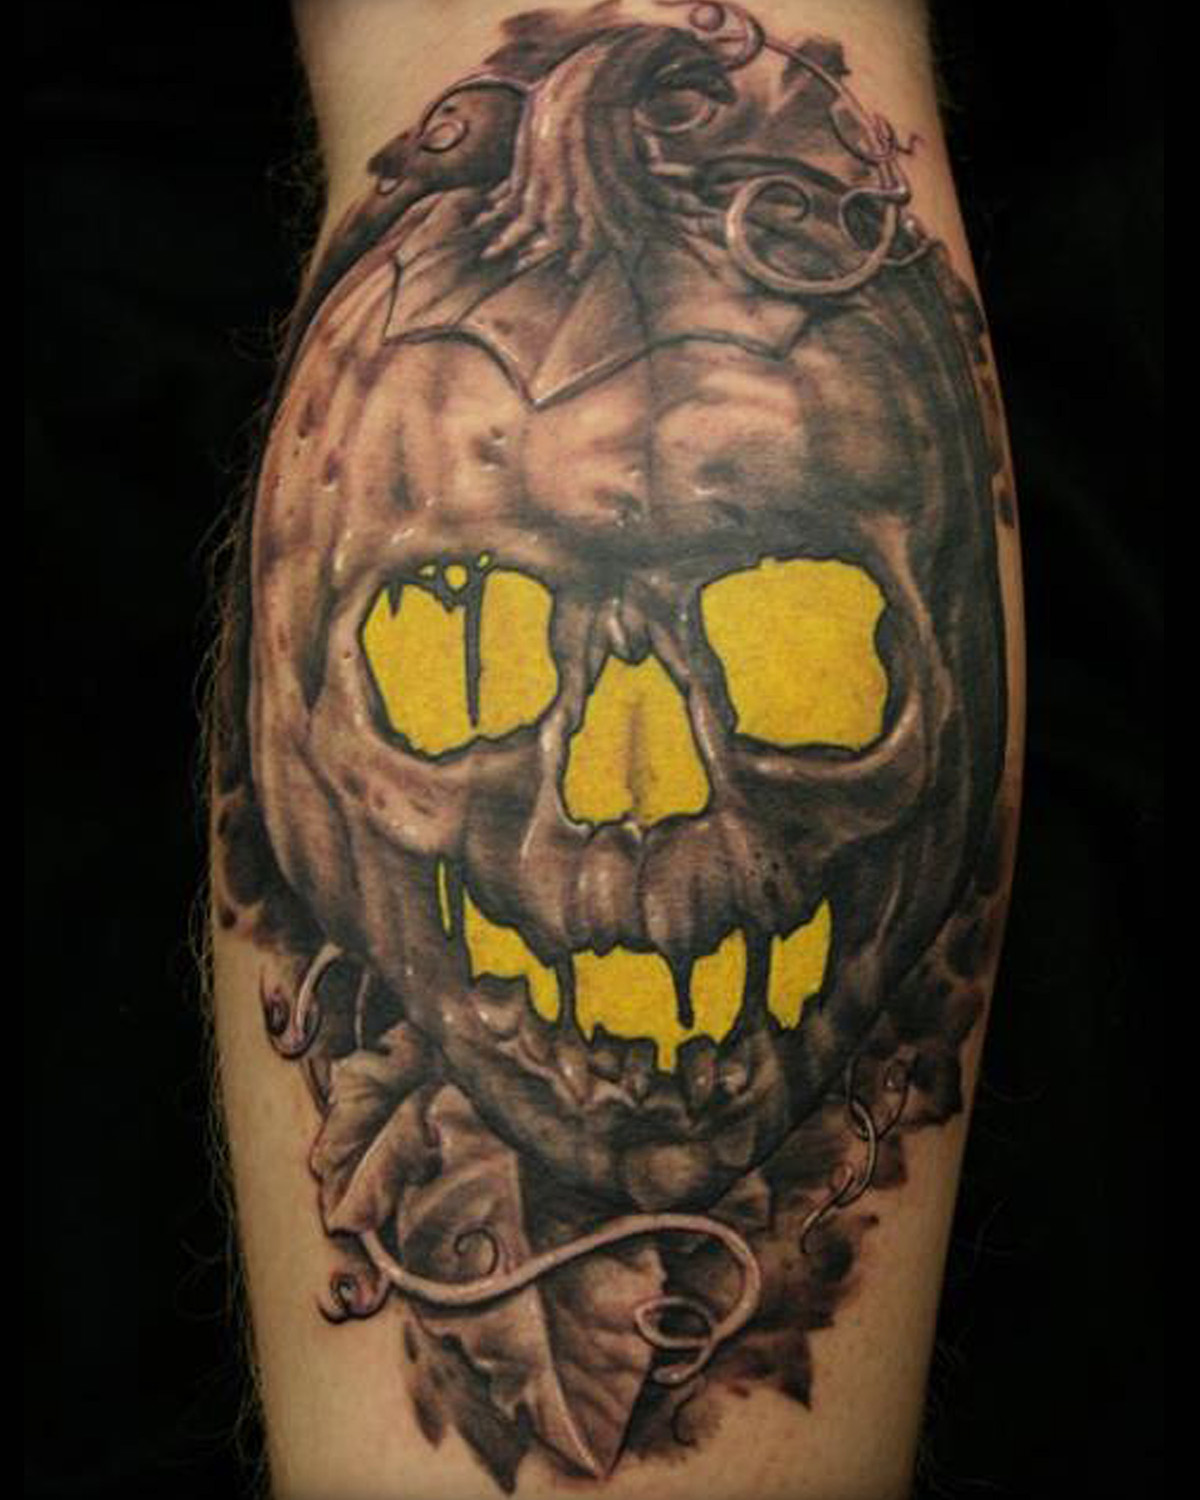 Realistic skull tattoos by jackie rabbit on behance for Best tattoo artists in northern california